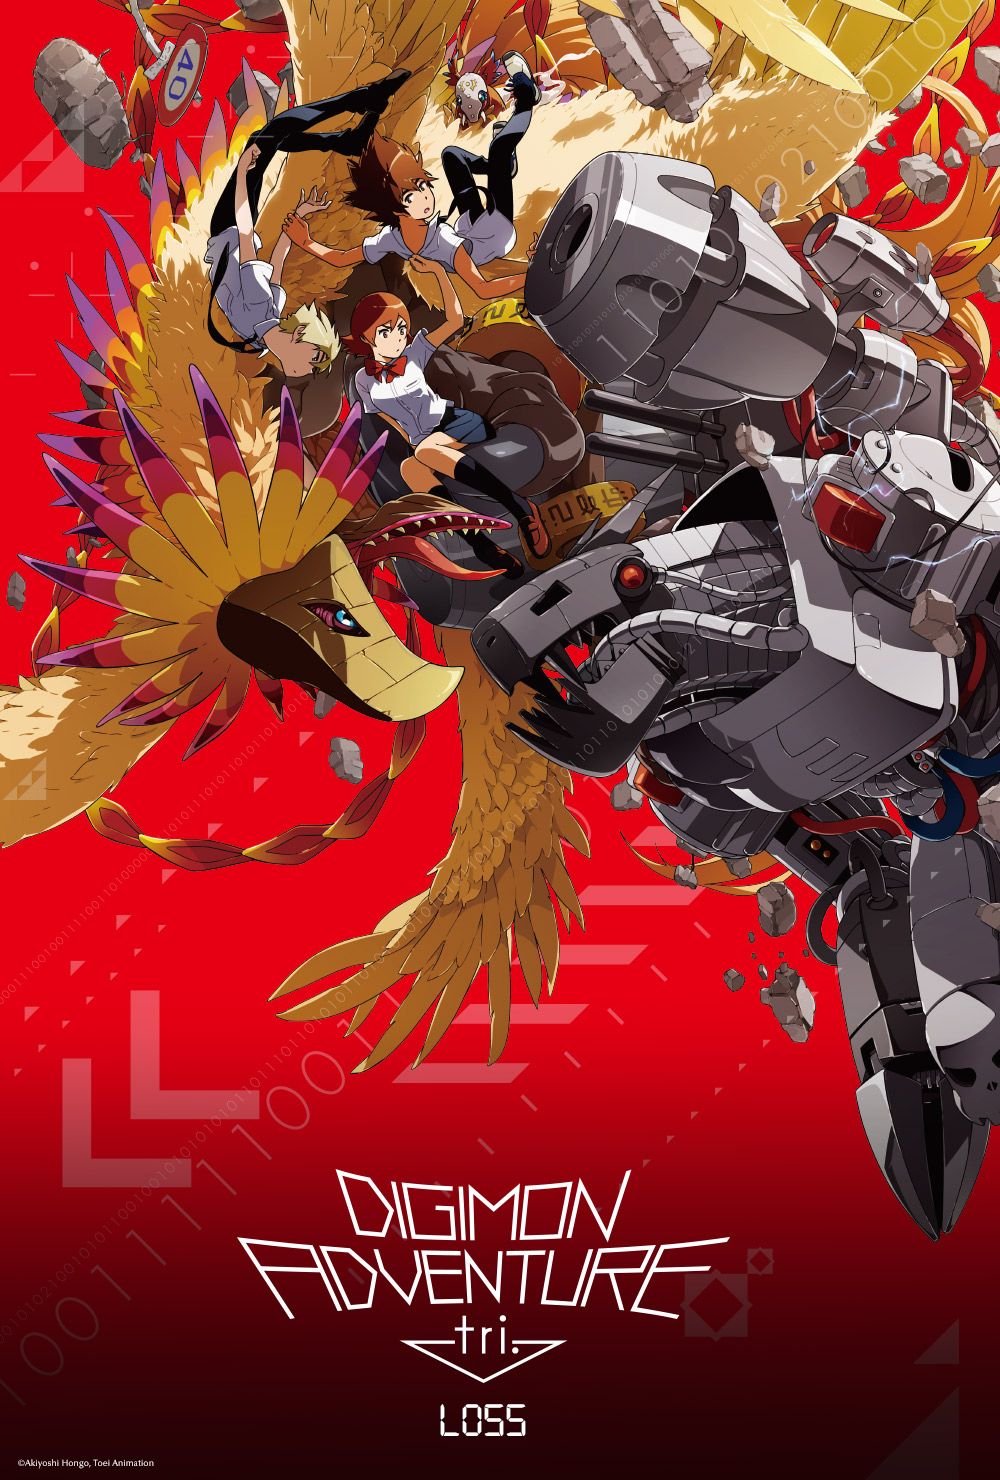 DIGIMON ADVENTURE tri.: Loss